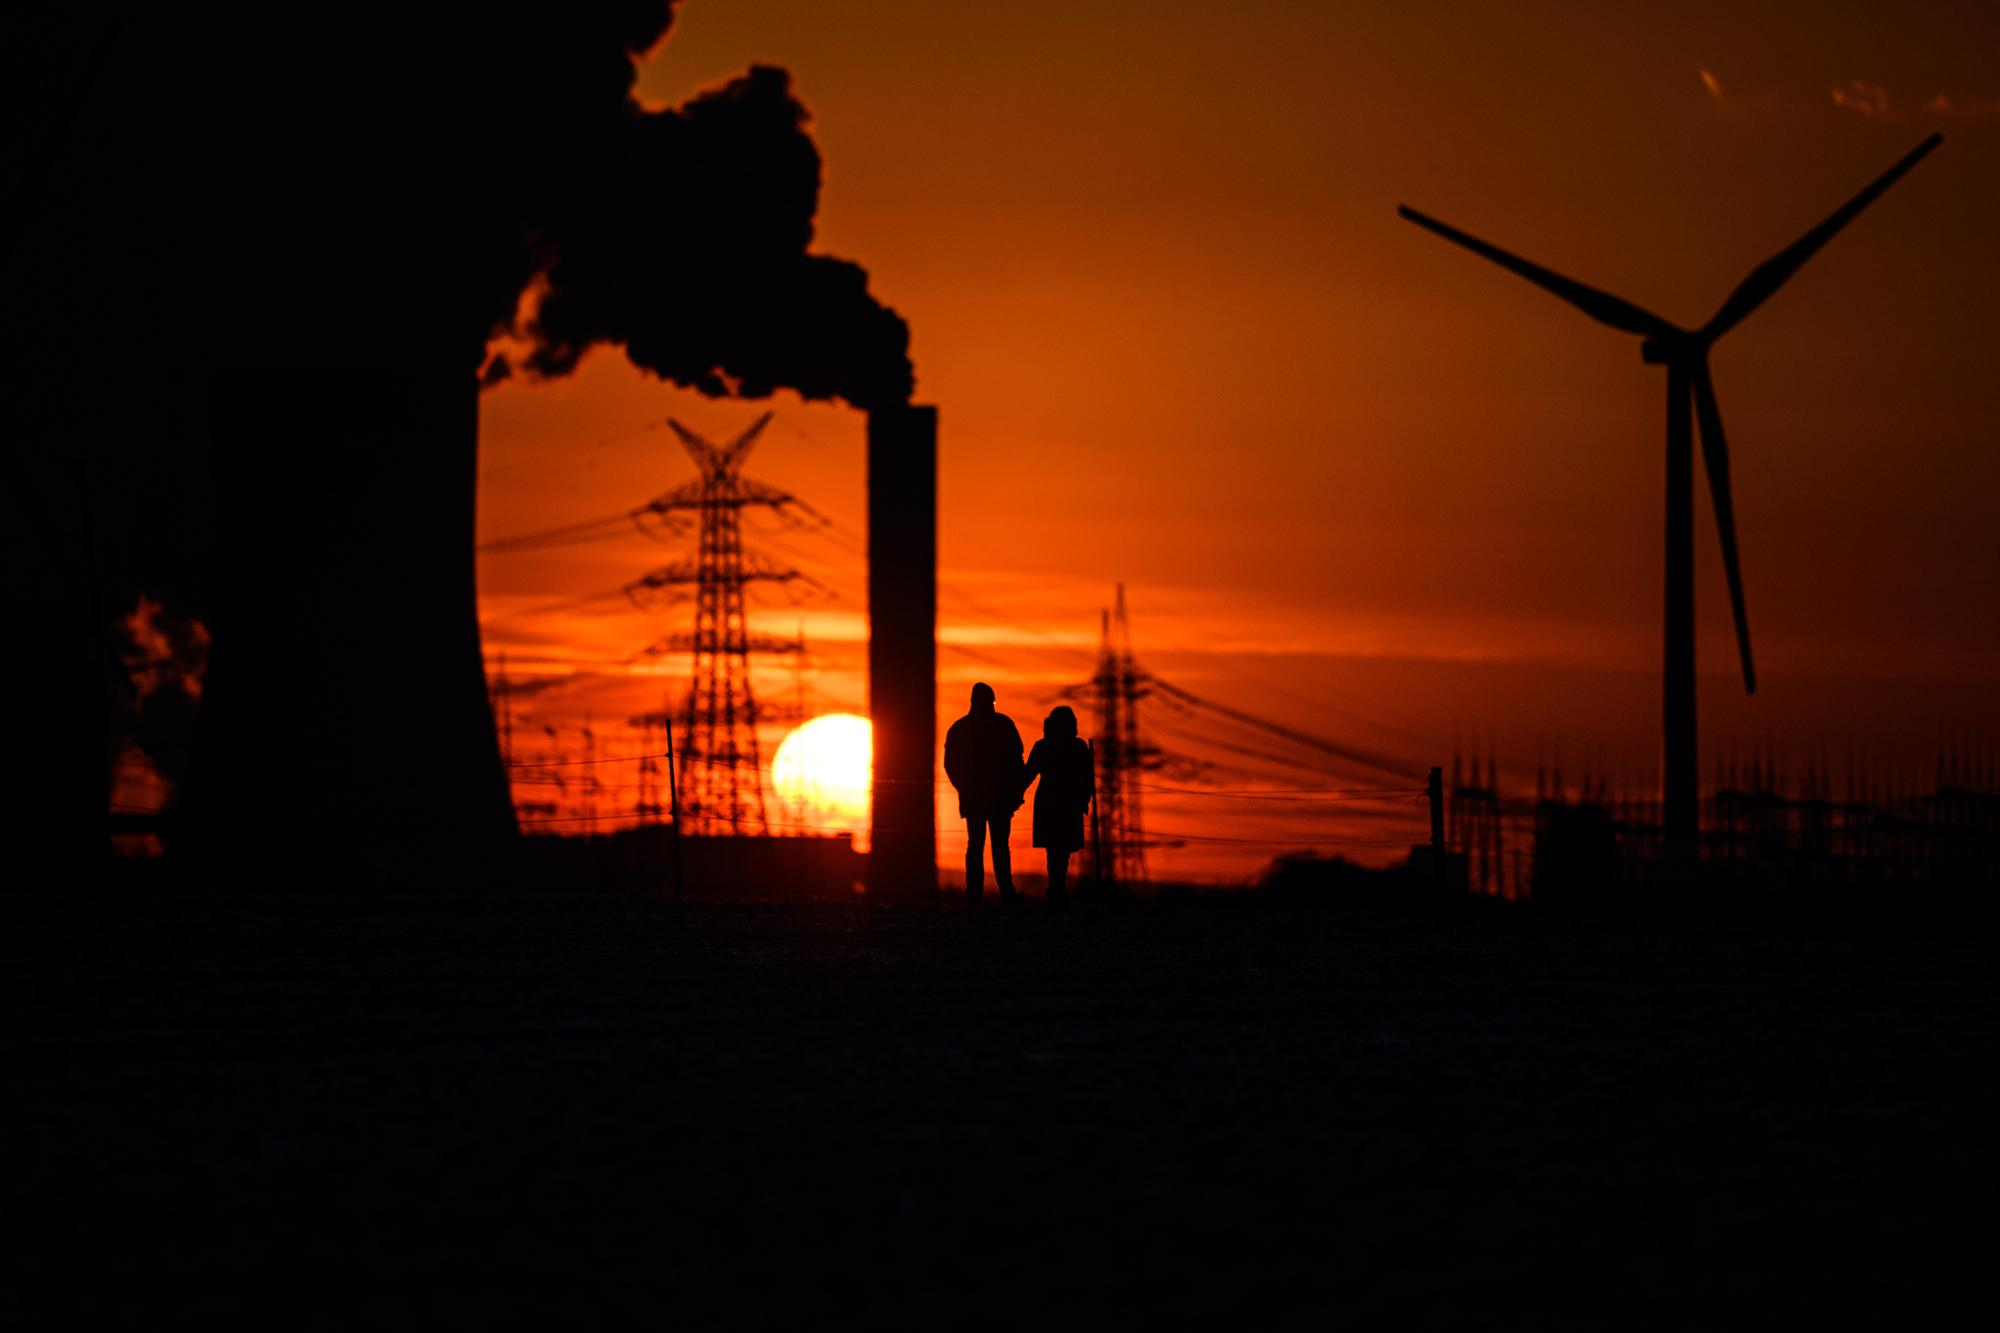 Solving climate crisis will require 'total transformation' of global energy use, IAE report says